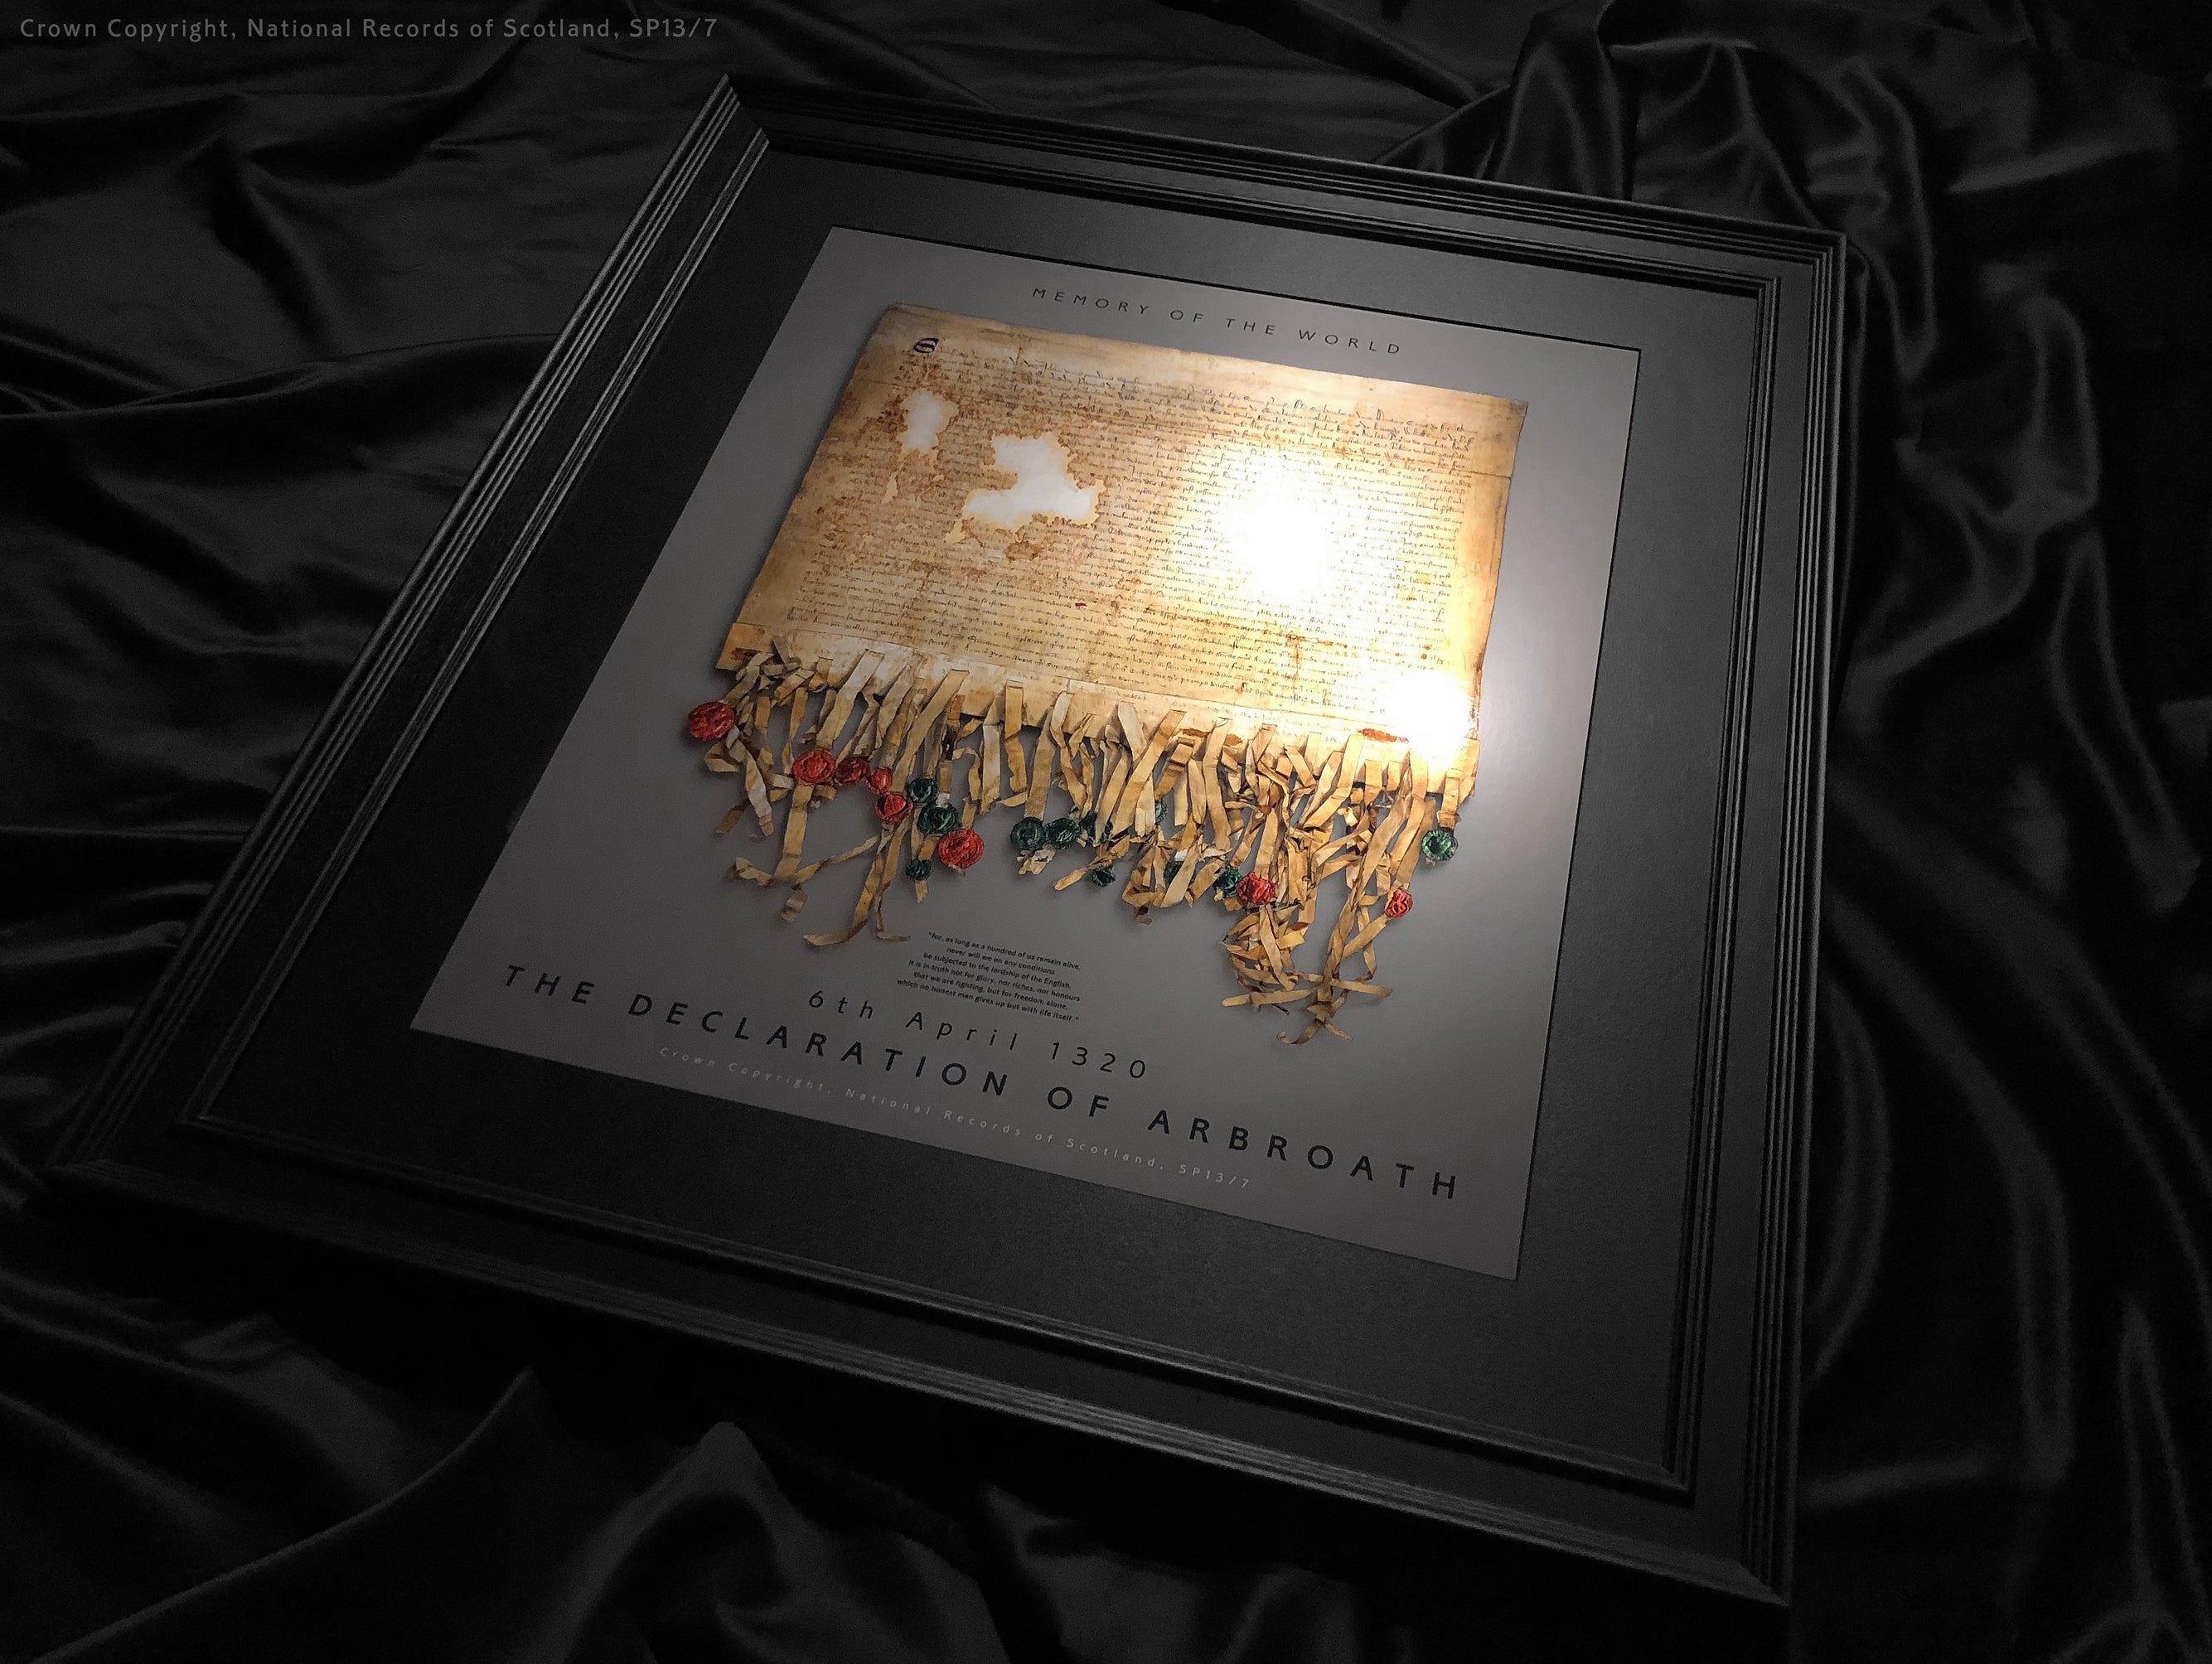 The Declaration of Arbroath Gold Metallic Prints - Limited Edition - laser printed Fine Art Metallic print! Certified by holographic certificate - Pewter